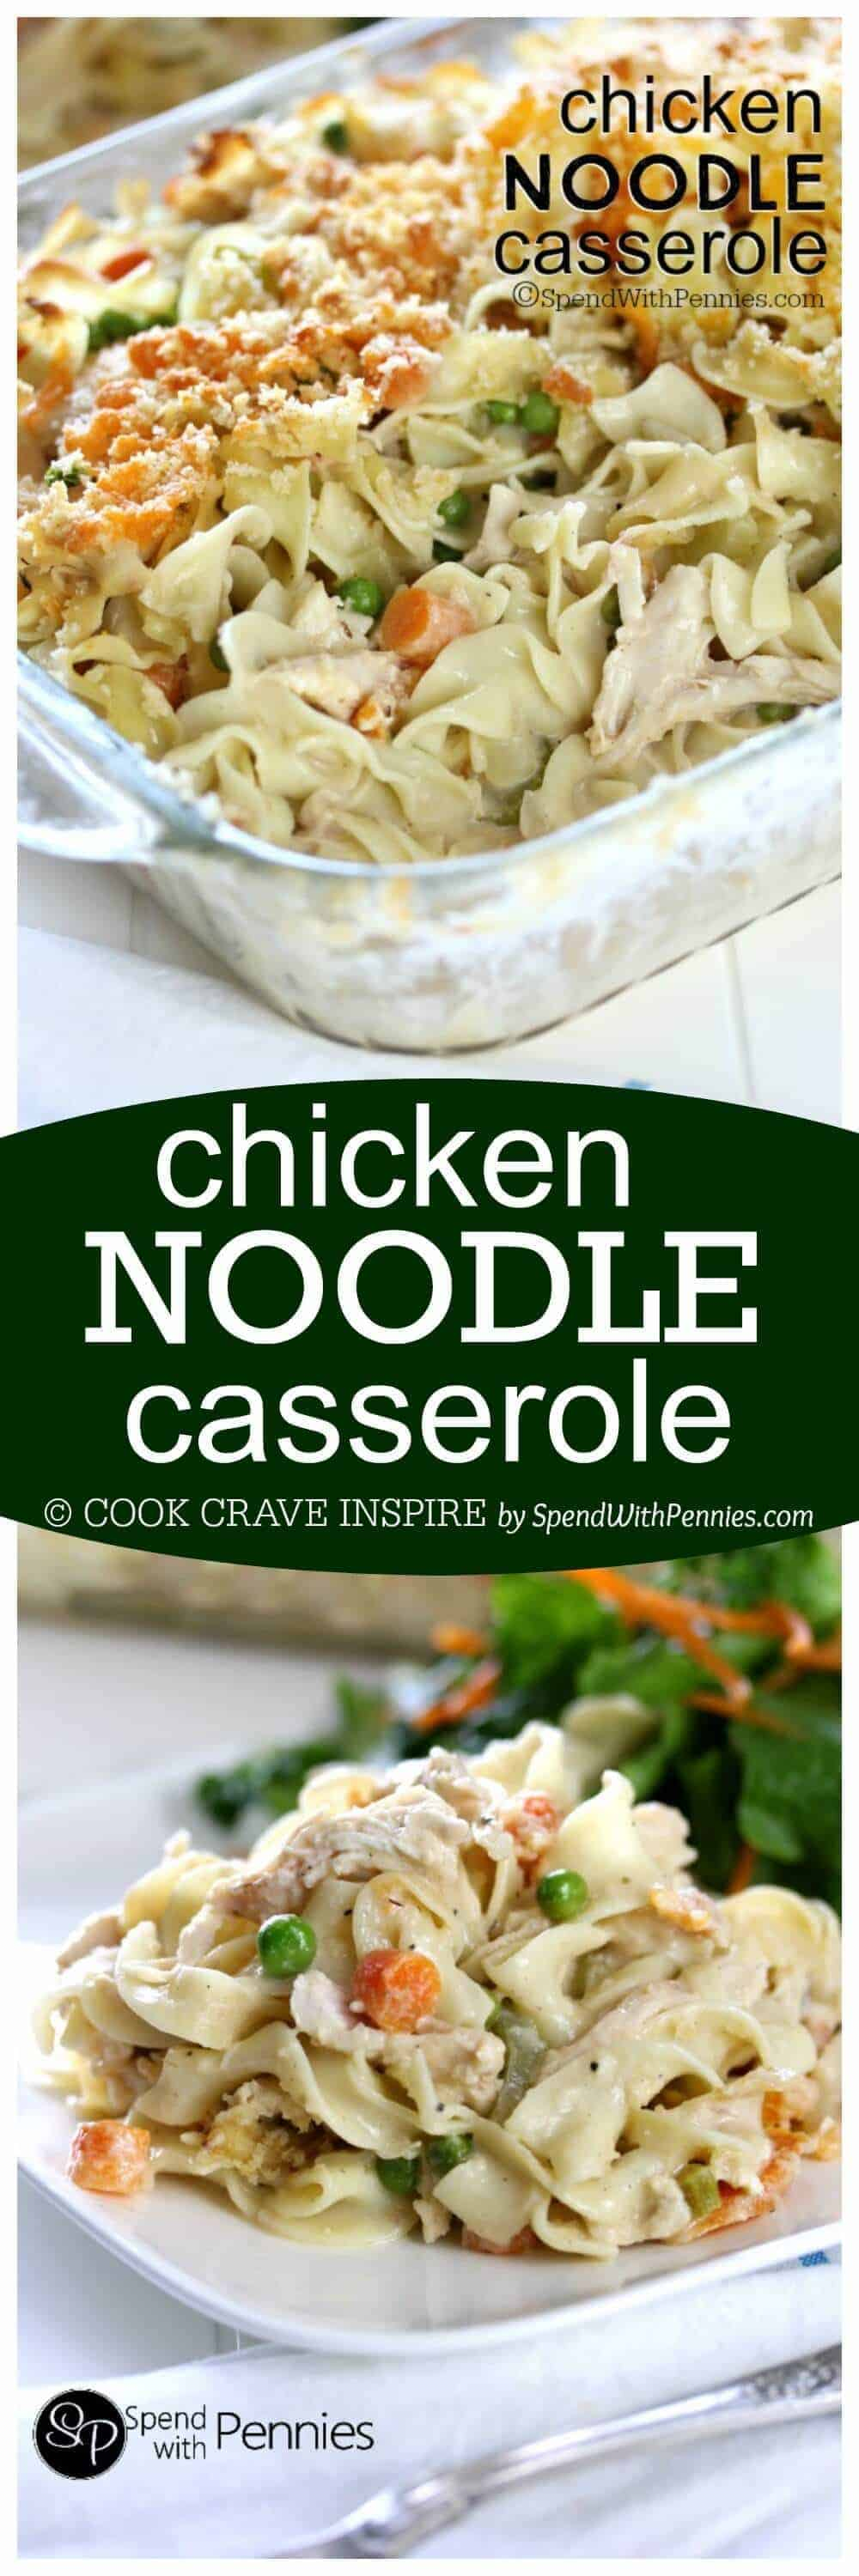 Chicken Noodle Casserole with a title